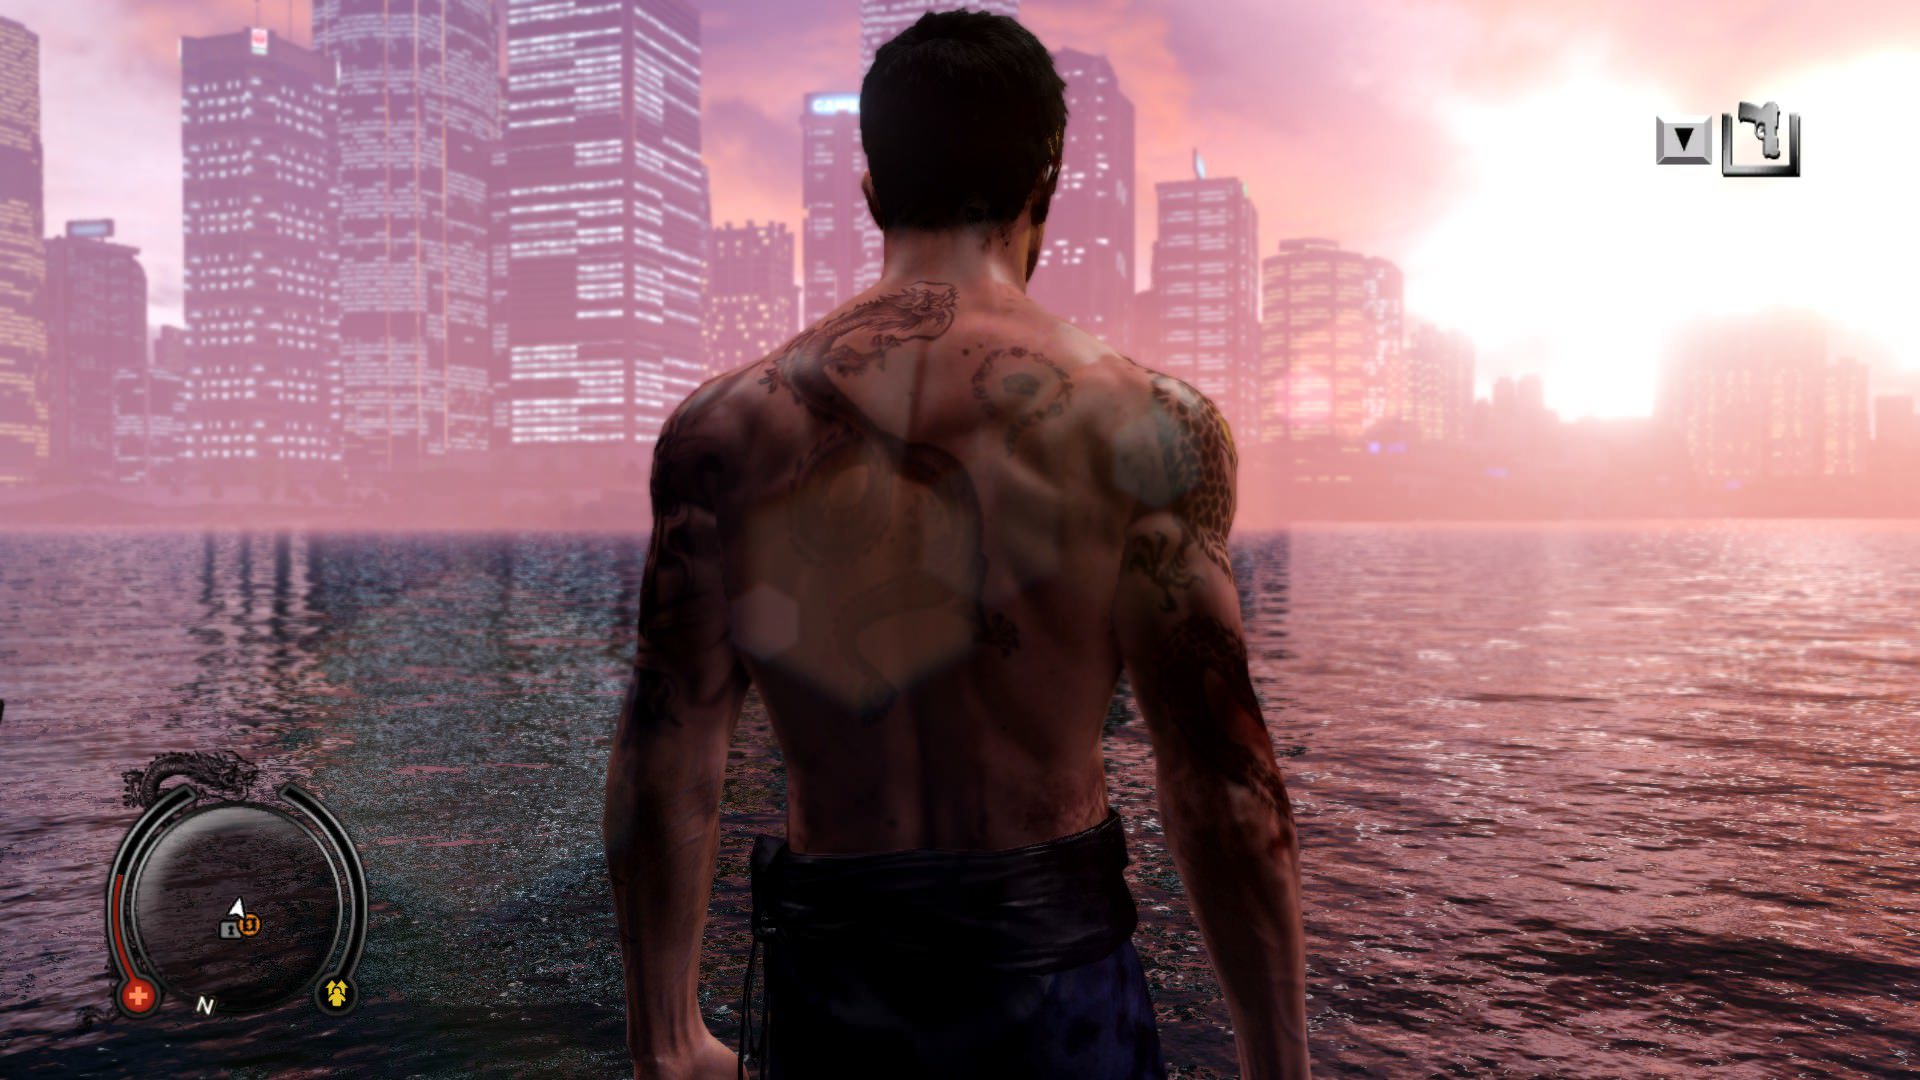 #2 - Sleeping Dogs